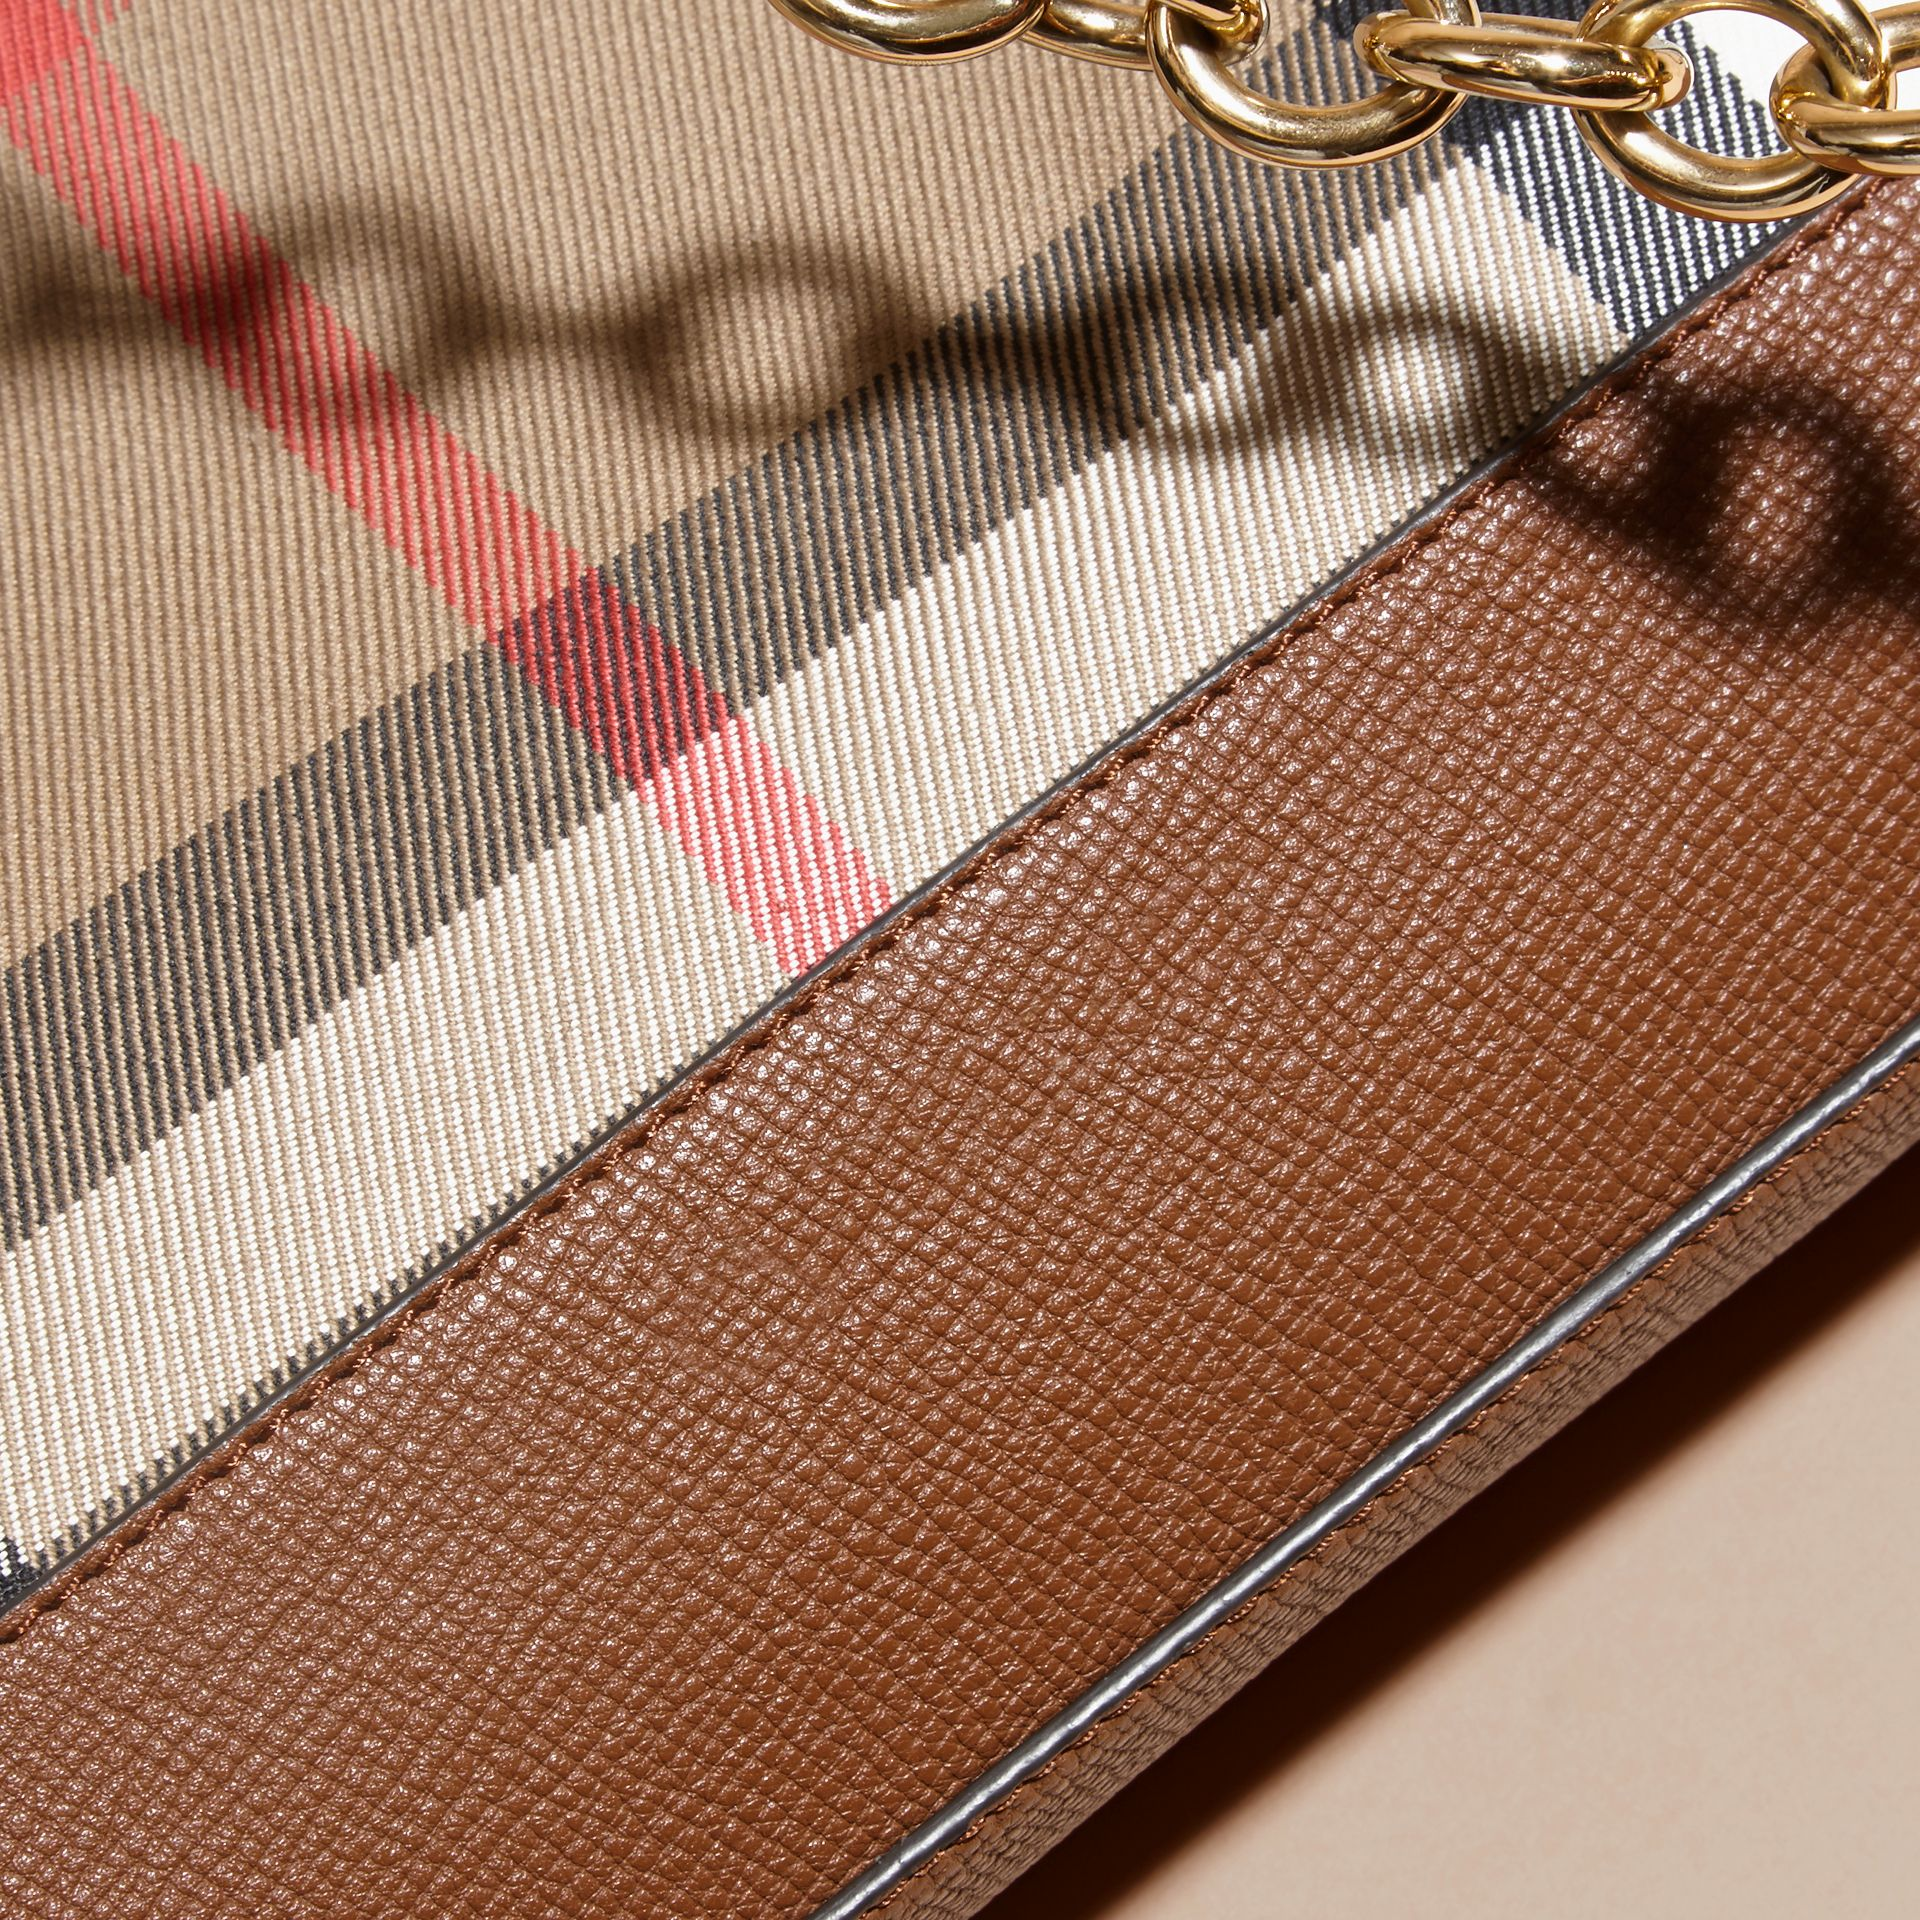 House Check and Leather Clutch Bag in Tan - Women | Burberry - gallery image 2